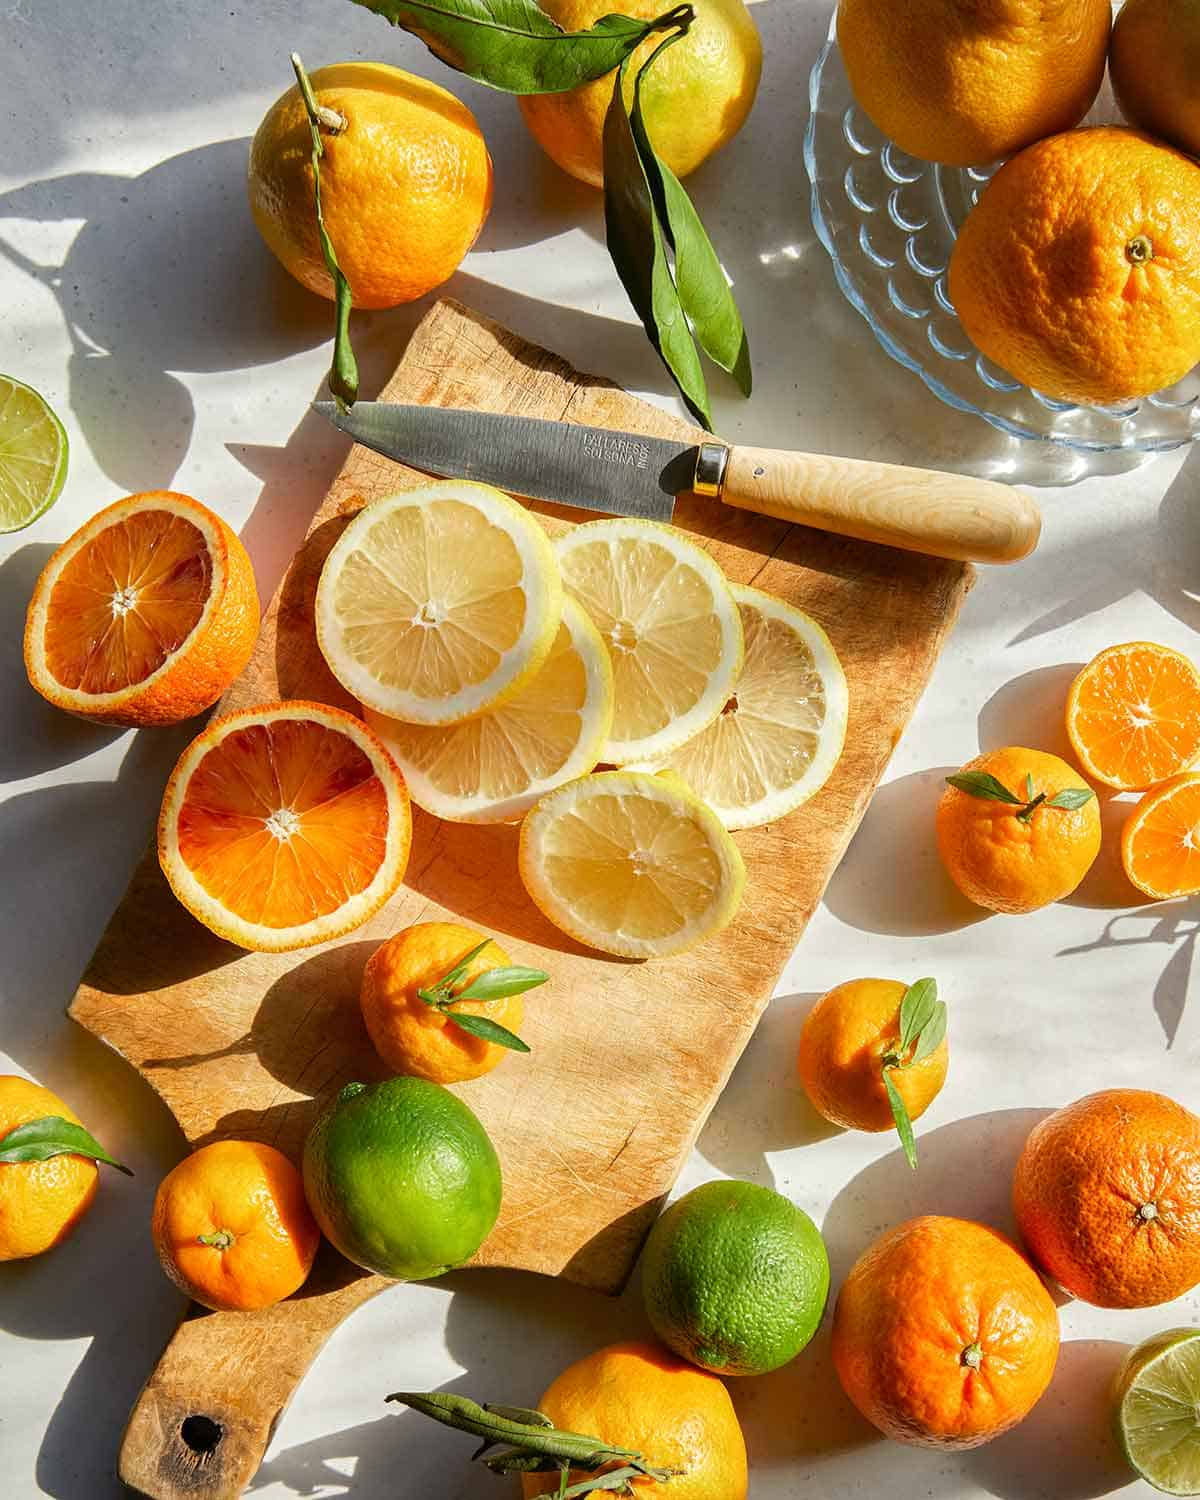 Slicing various kinds of citrus to make dehydrated citrus wheels.